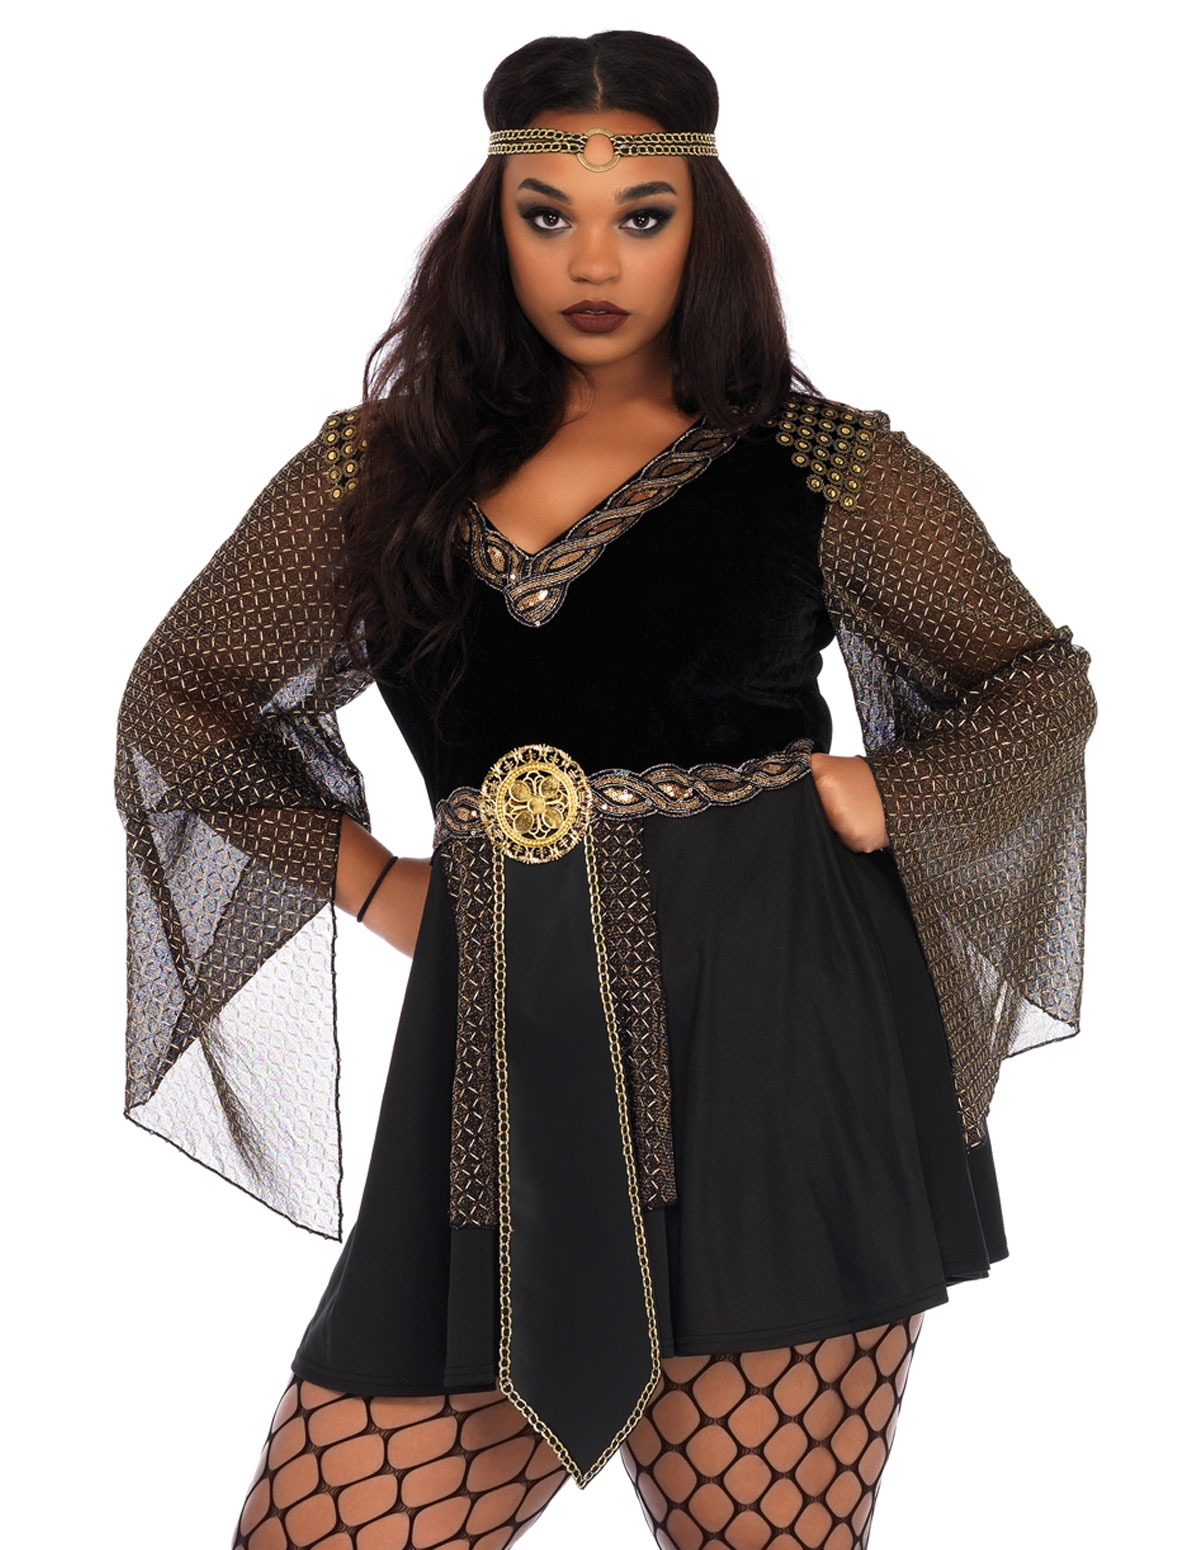 Glamazon Warrior Plus Size Costume